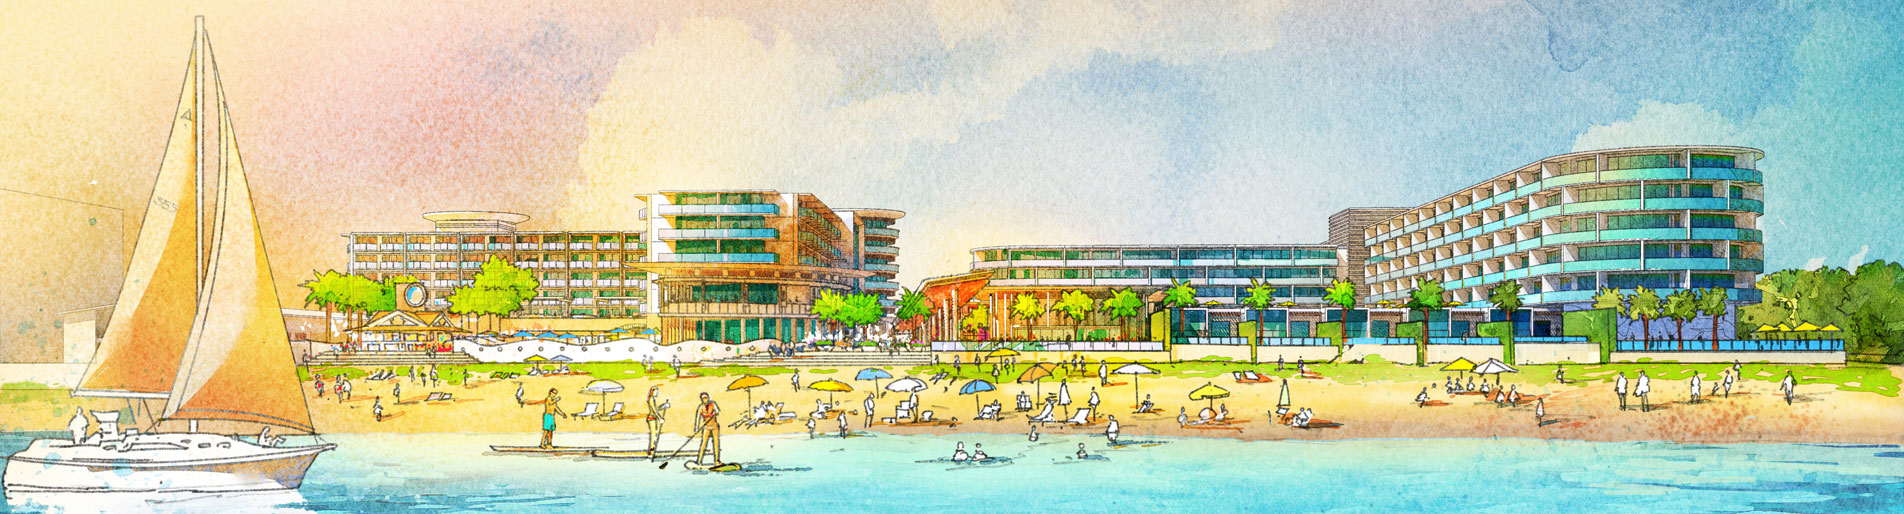 717179 Digital Watercolor Architectural Rendering of Cocoa Beach Hotel and Condo Waterfront for AECOM